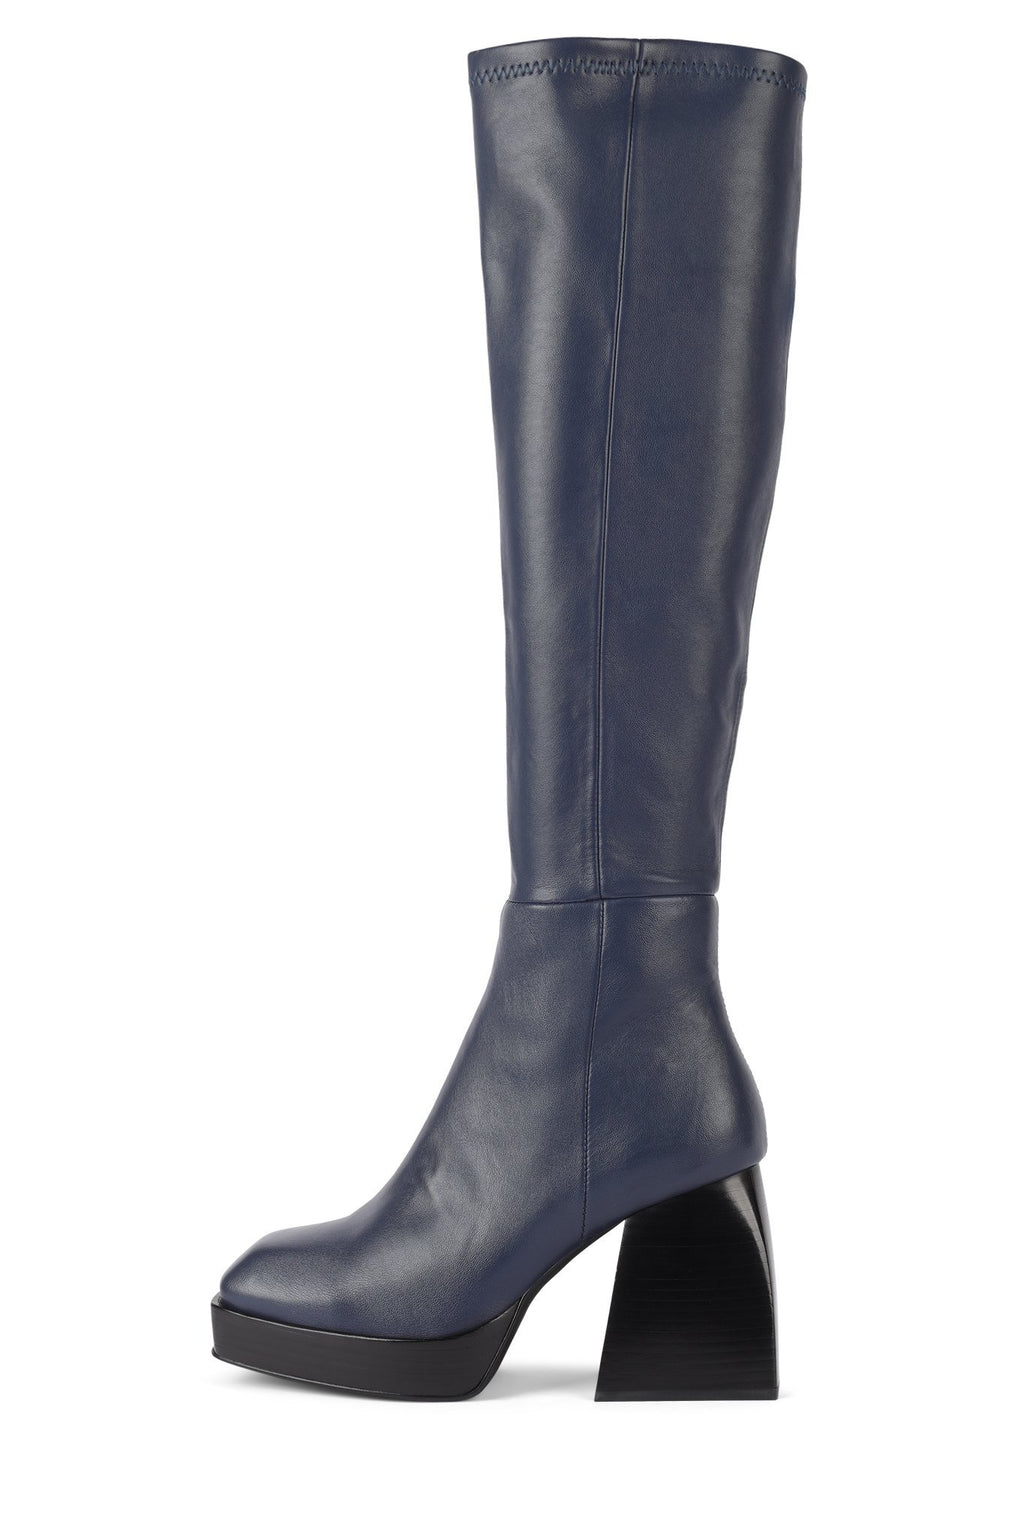 DAUPHIN Knee-High Boot STRATEGY Navy 6